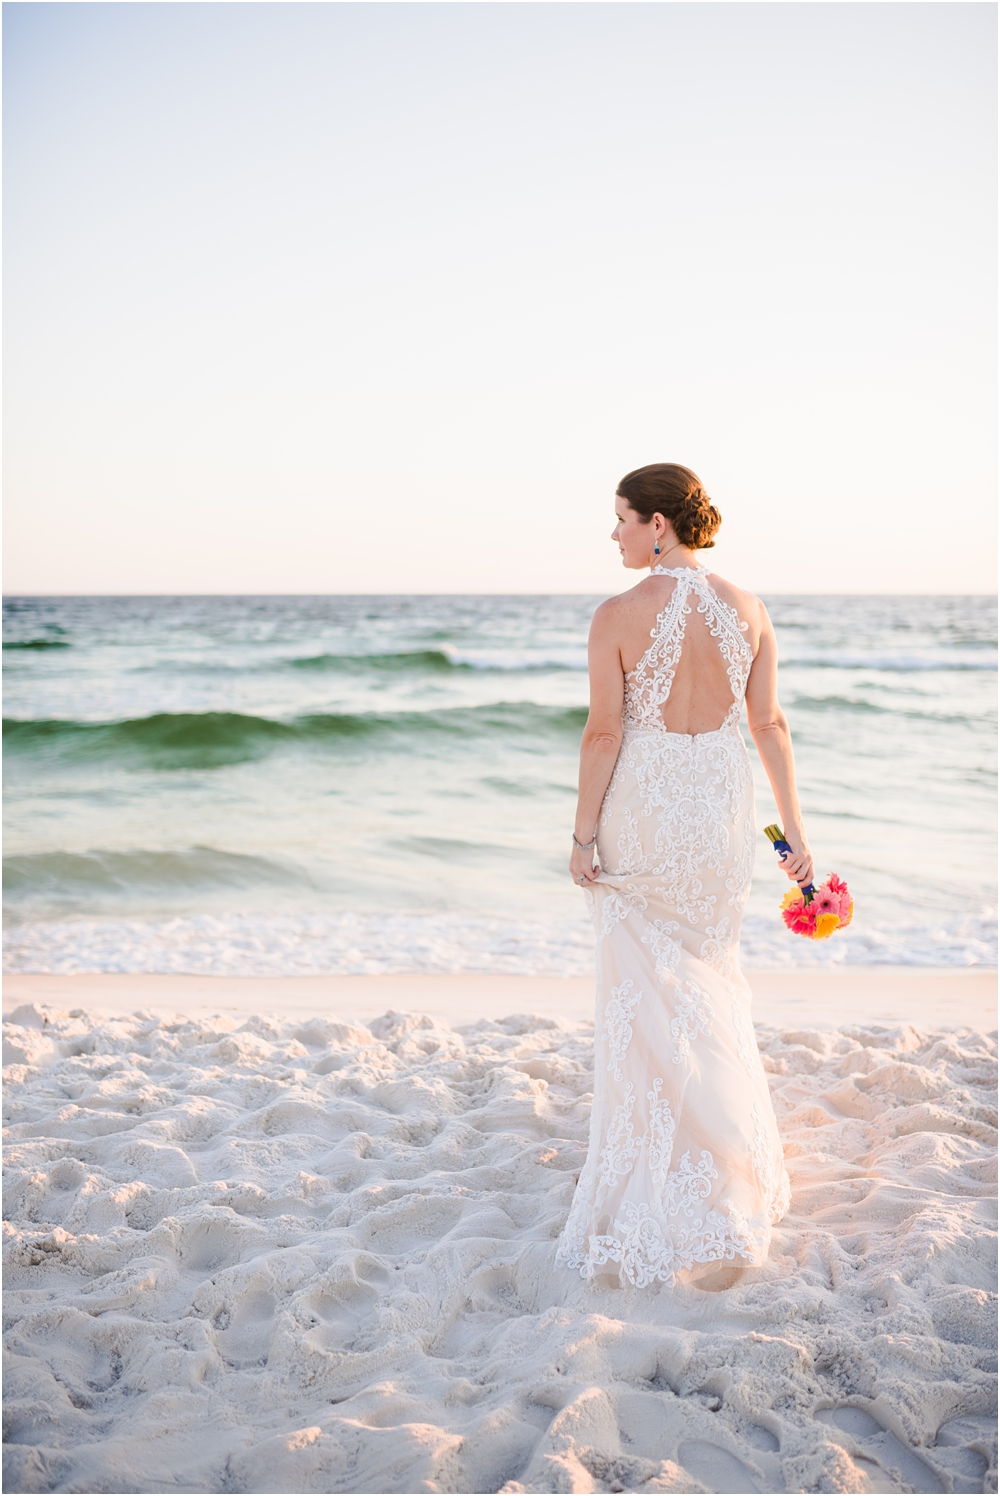 ledman-wedding-kiersten-stevenson-photography-30a-panama-city-beach-dothan-tallahassee-(488-of-763).JPG